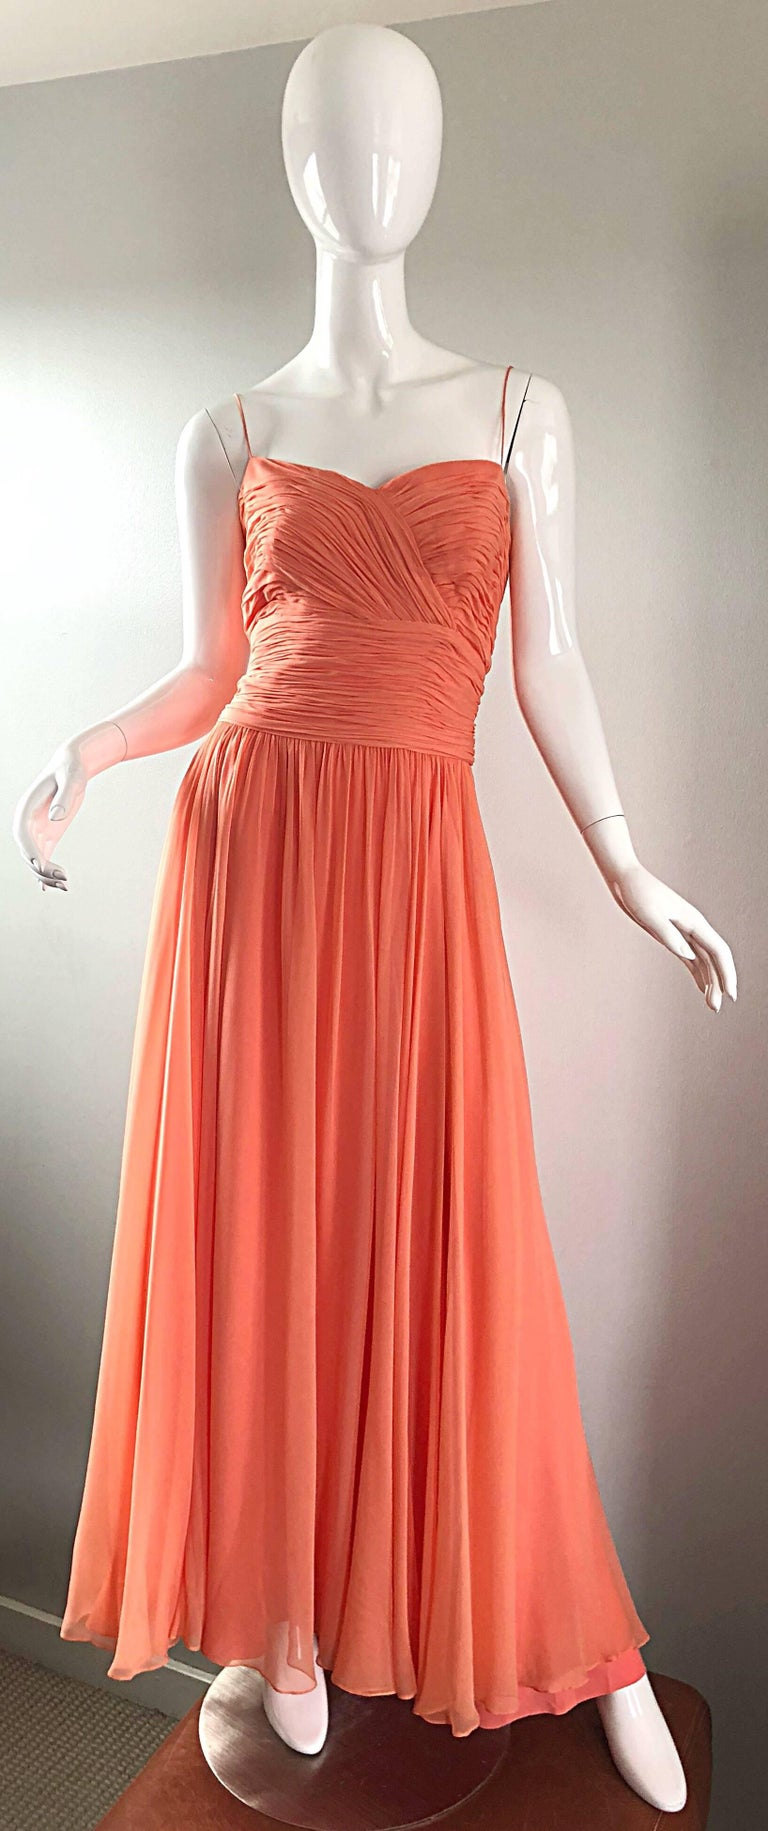 Gorgeous 1950s Saks 5th Ave. Salmon / Coral Pink Silk Chiffon Vintage 50s Gown For Sale 11